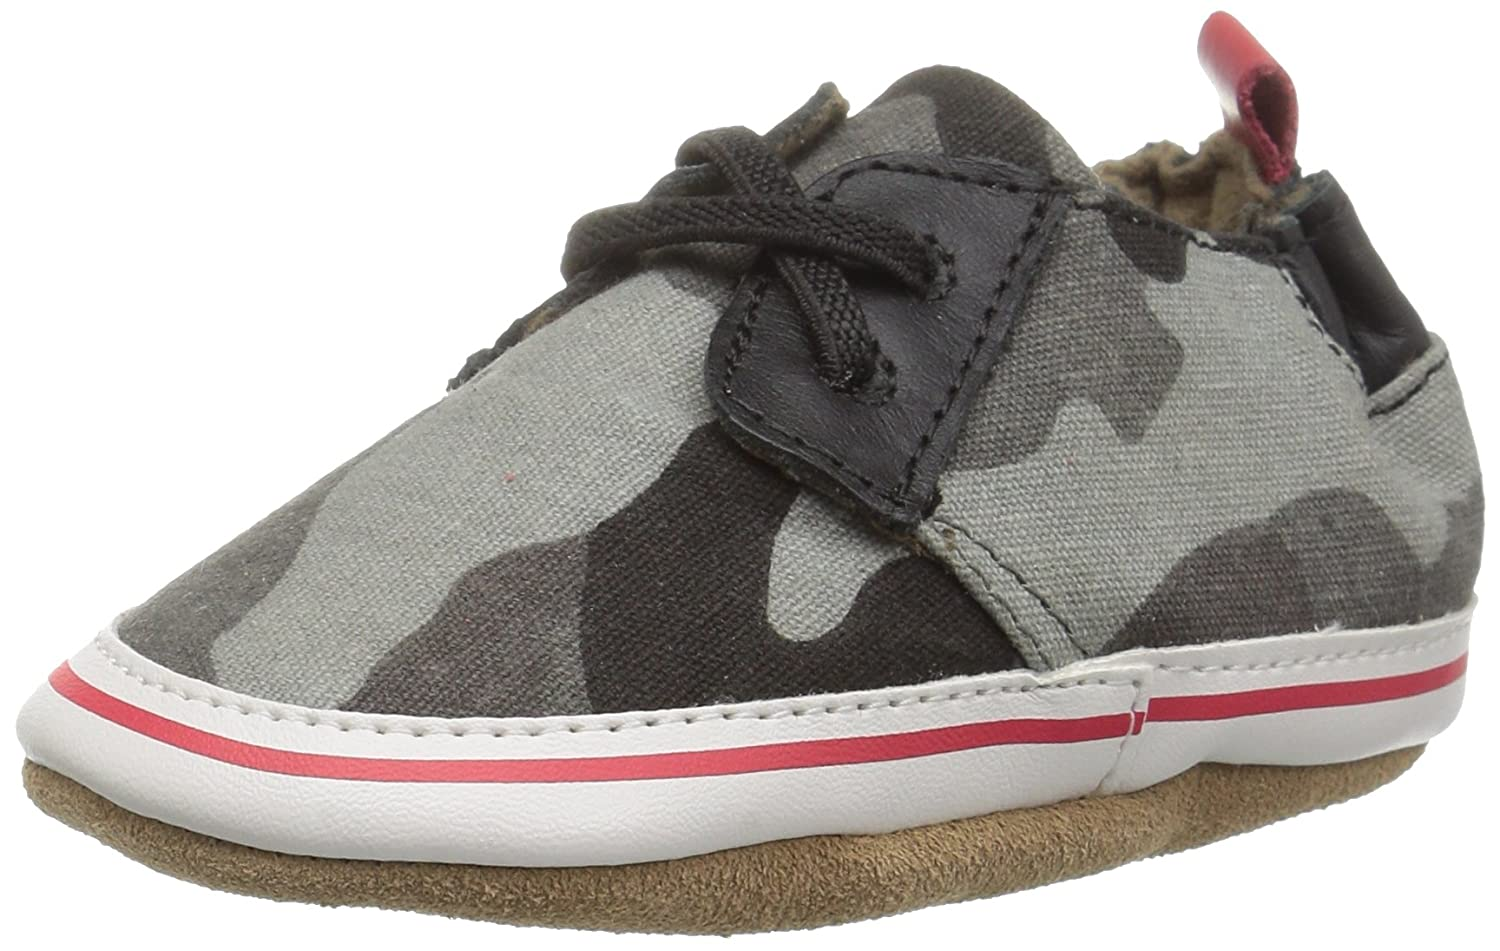 Robeez Stylish Steve Soft Sole Crib Shoe (Infant) Stylish Steve - K